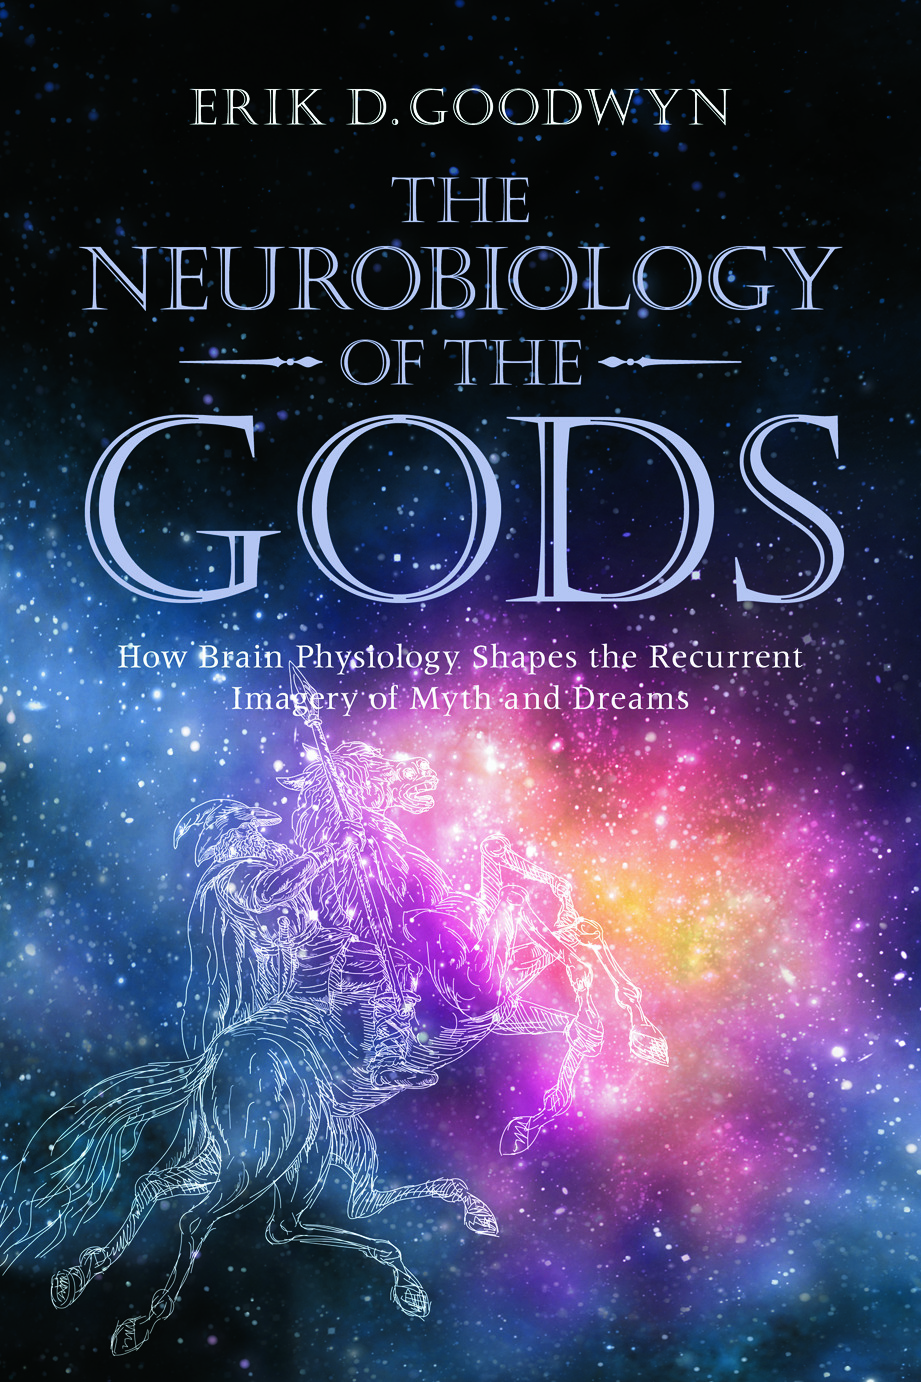 The Neurobiology of the Gods: How Brain Physiology Shapes the Recurrent Imagery of Myth and Dreams (Paperback) book cover